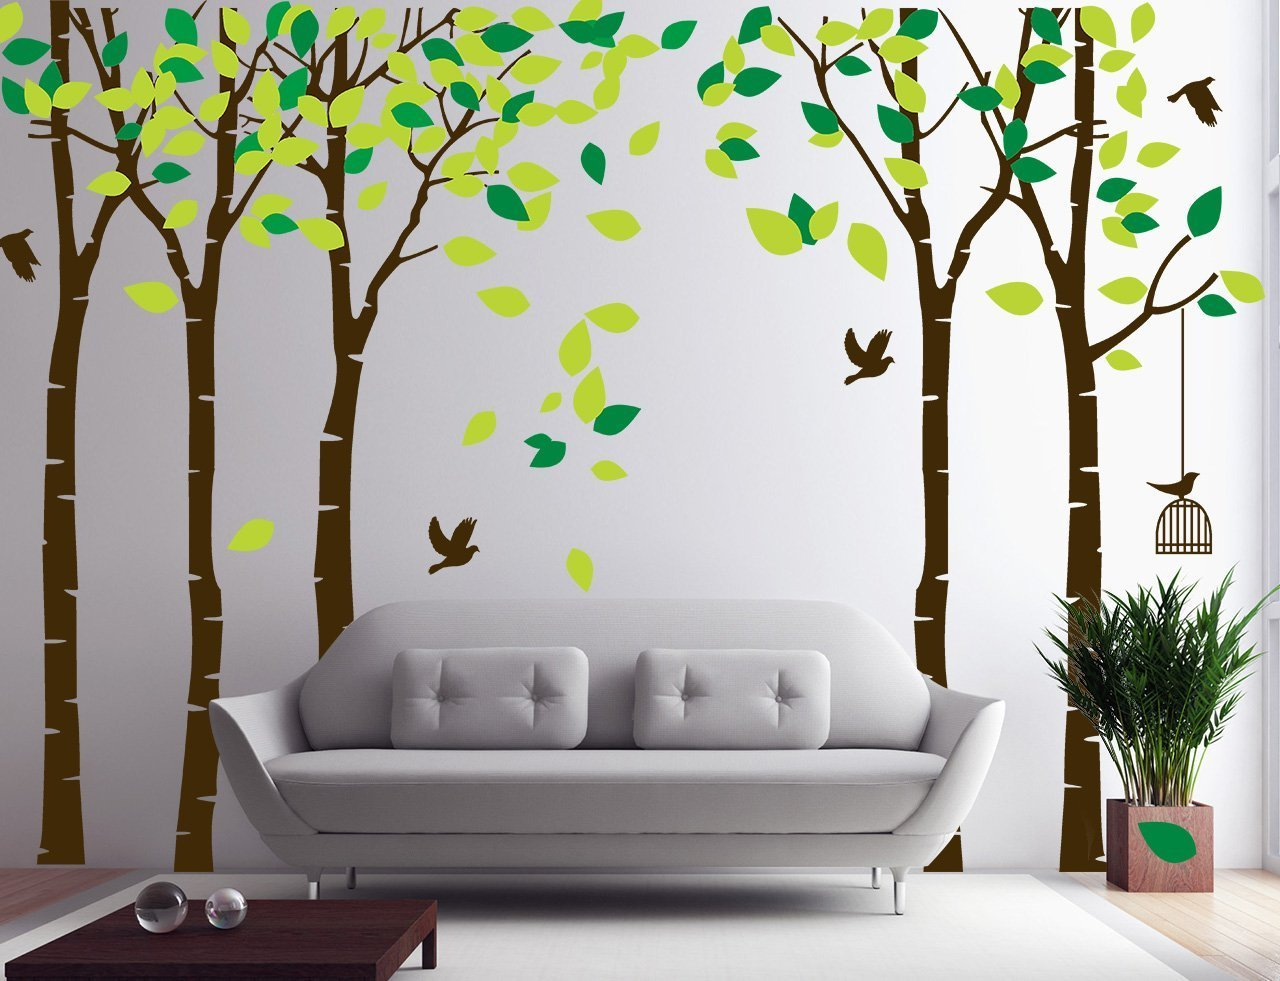 Amaonm 104''x71'' Giant Large Jungle 5 Trees Wall Decals Green Leaves and Fly Birds Wallpaper Wall Decor DIY Vinyl Wall Stickers for Kids Bedroom Living Room Nursery Rooms Offices Walls (Brown Tree)